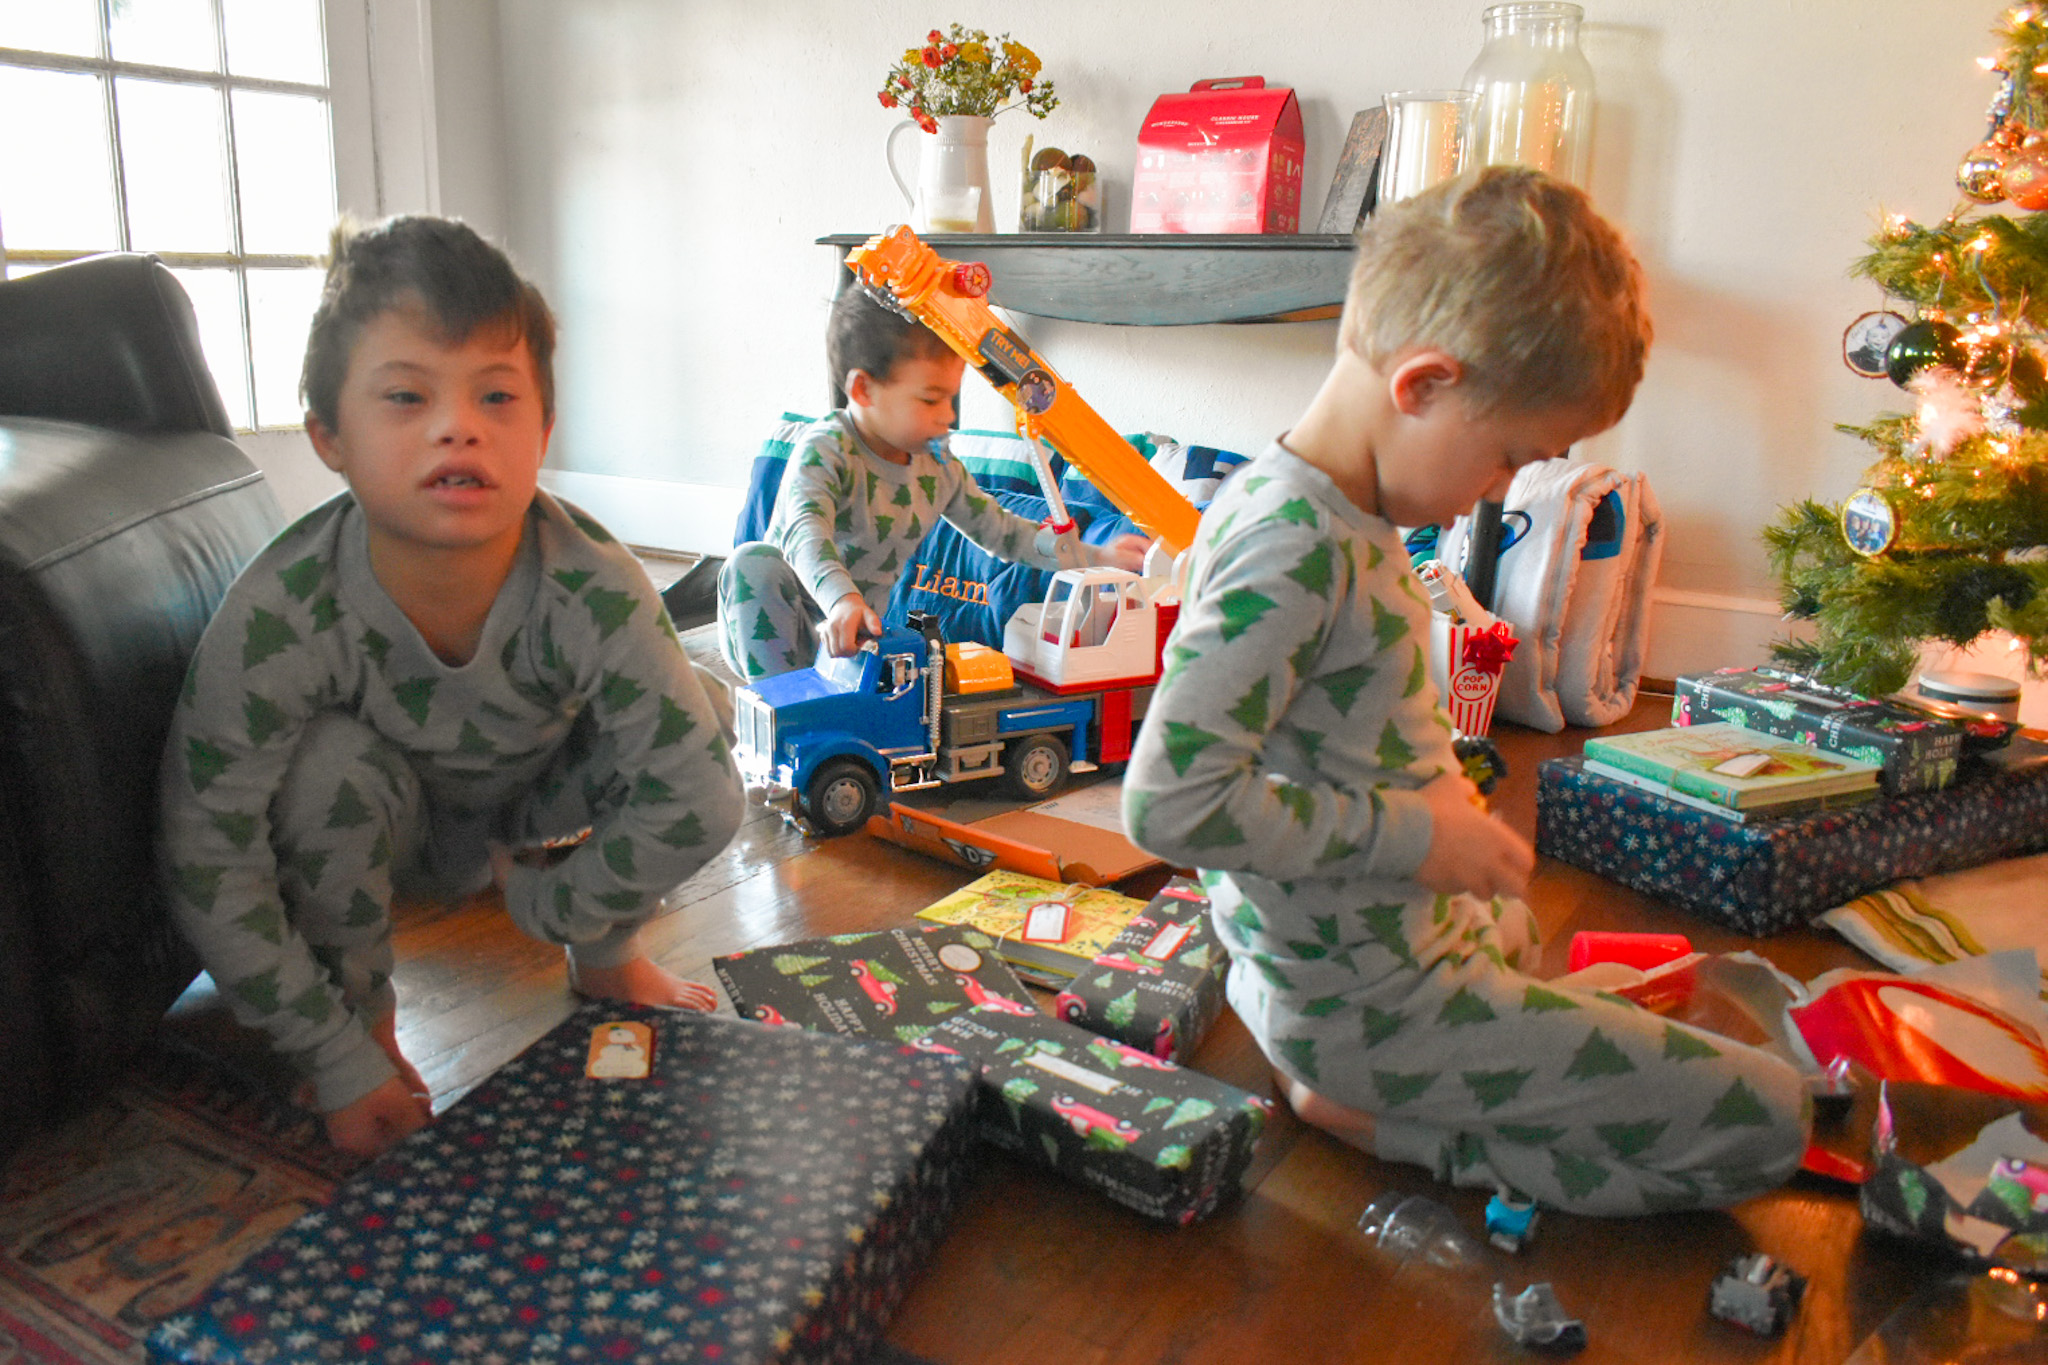 Three little boys opening up presents by the tree